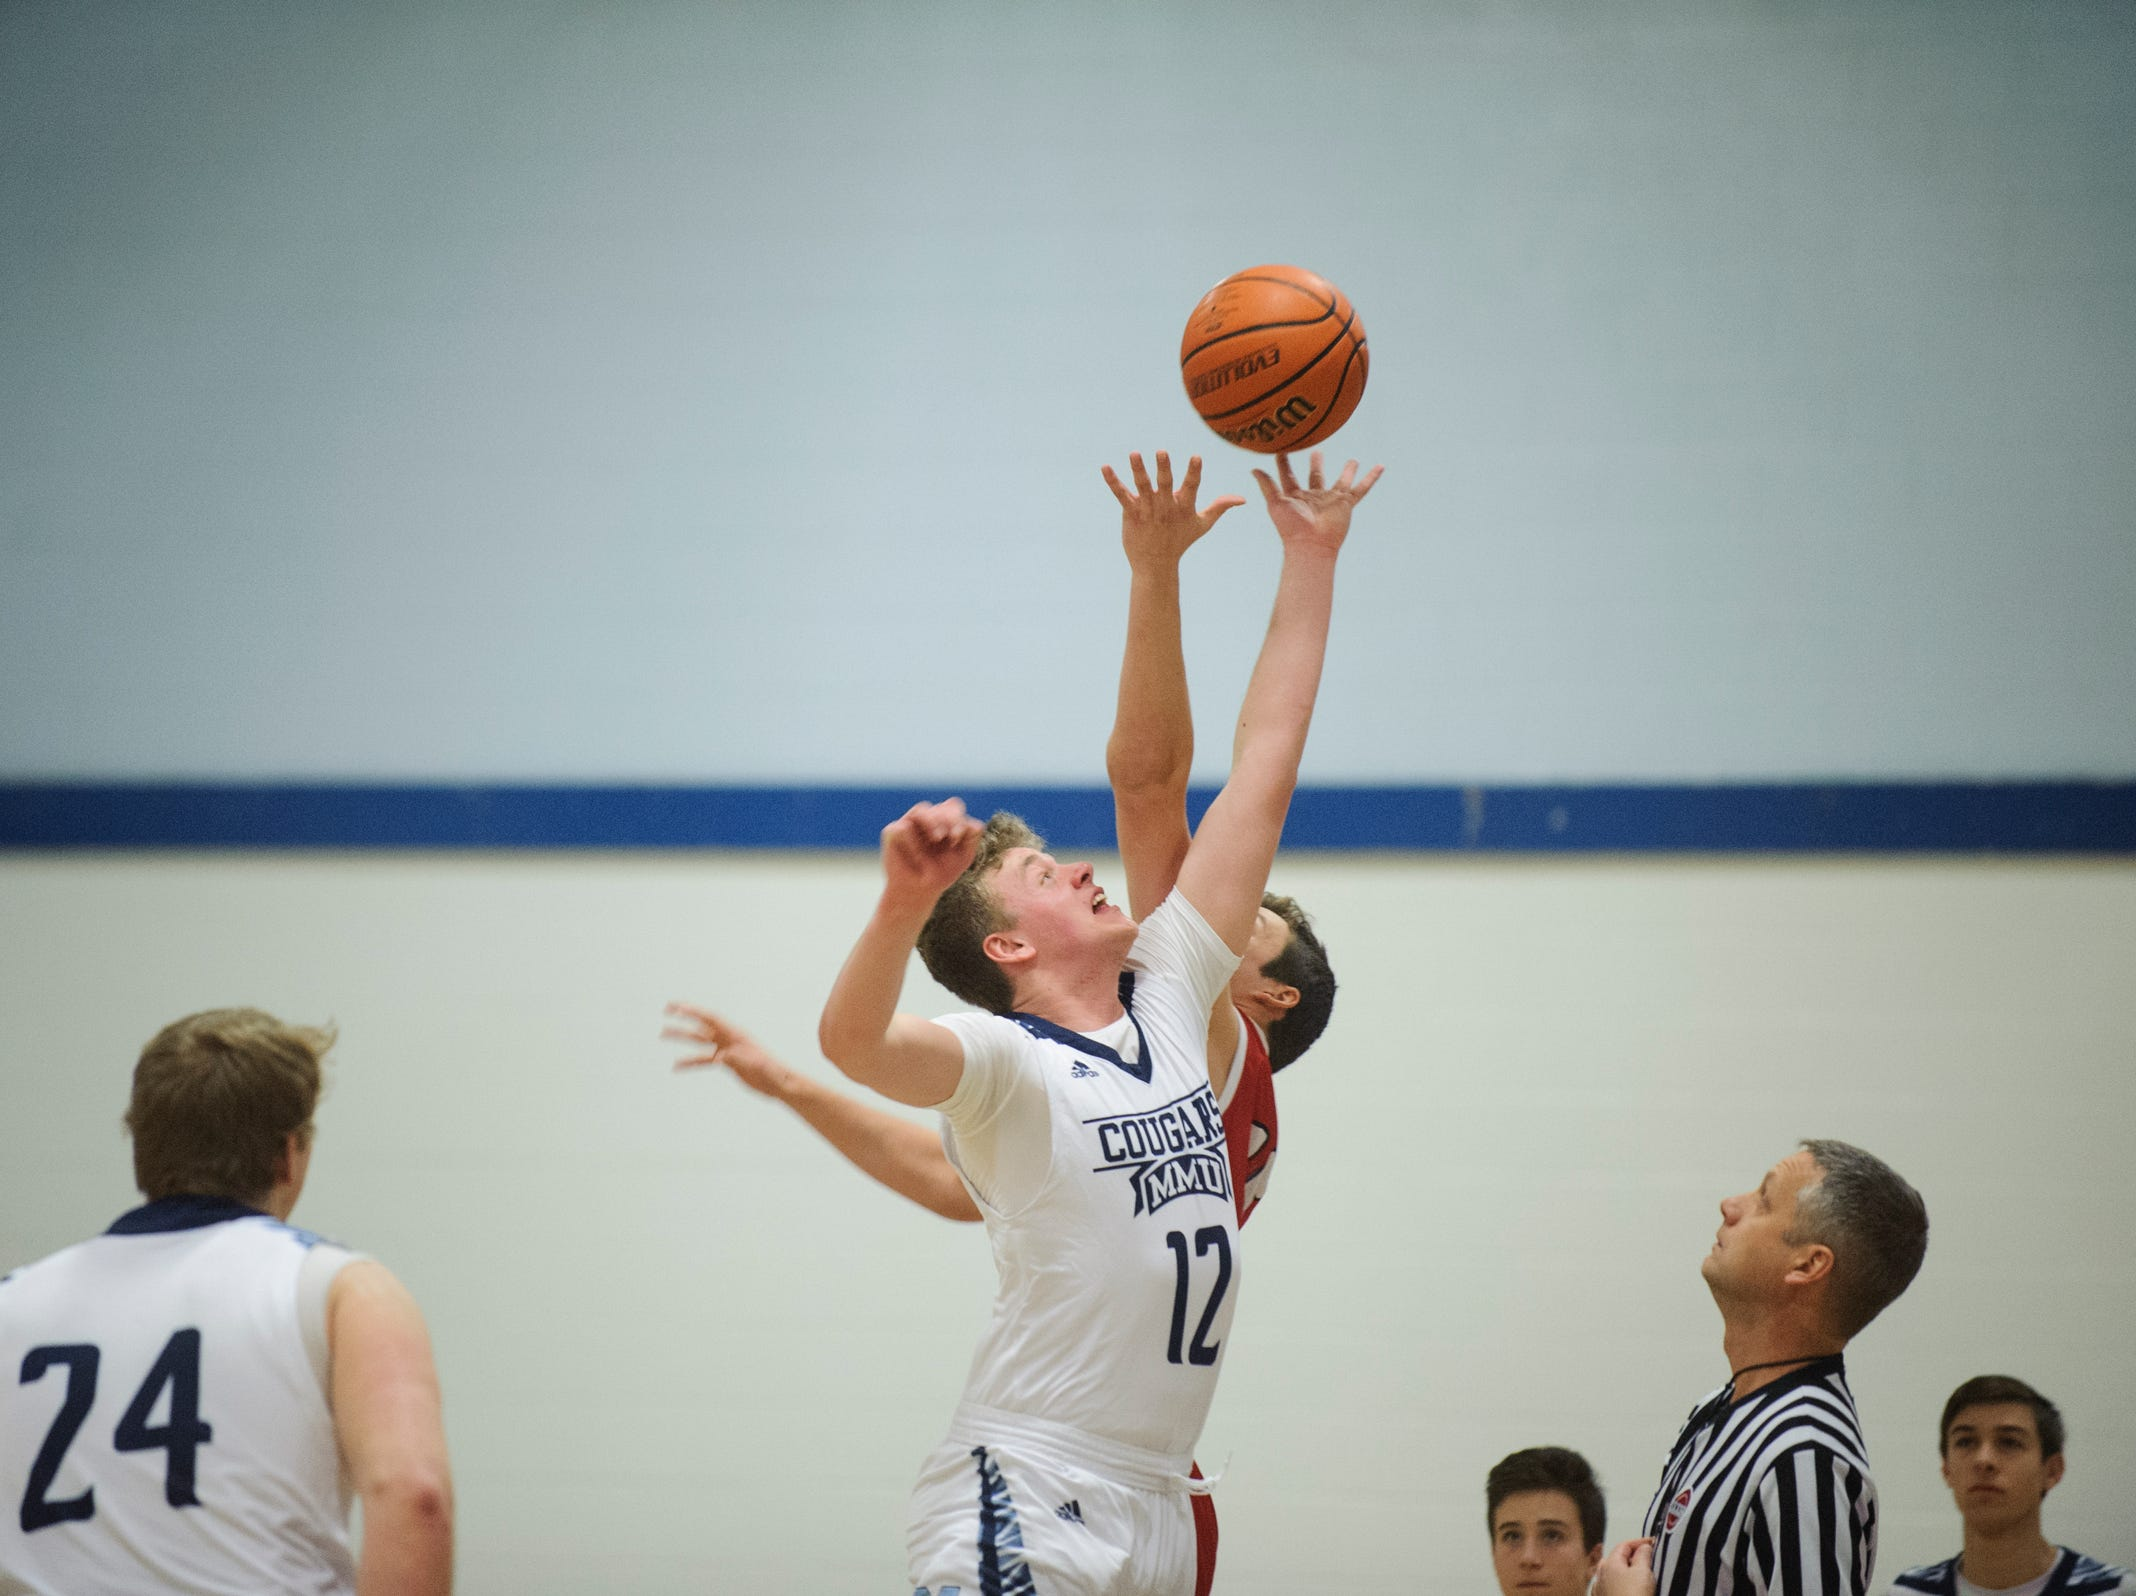 MMU's Asa Carlson (12) leaps for the opening tip off during the boys basketball game between the Champlain Valley Union Redhawks and the Mount Mansfield Cougars at MMU High School on Tuesday night January 22, 2019 in Jericho.